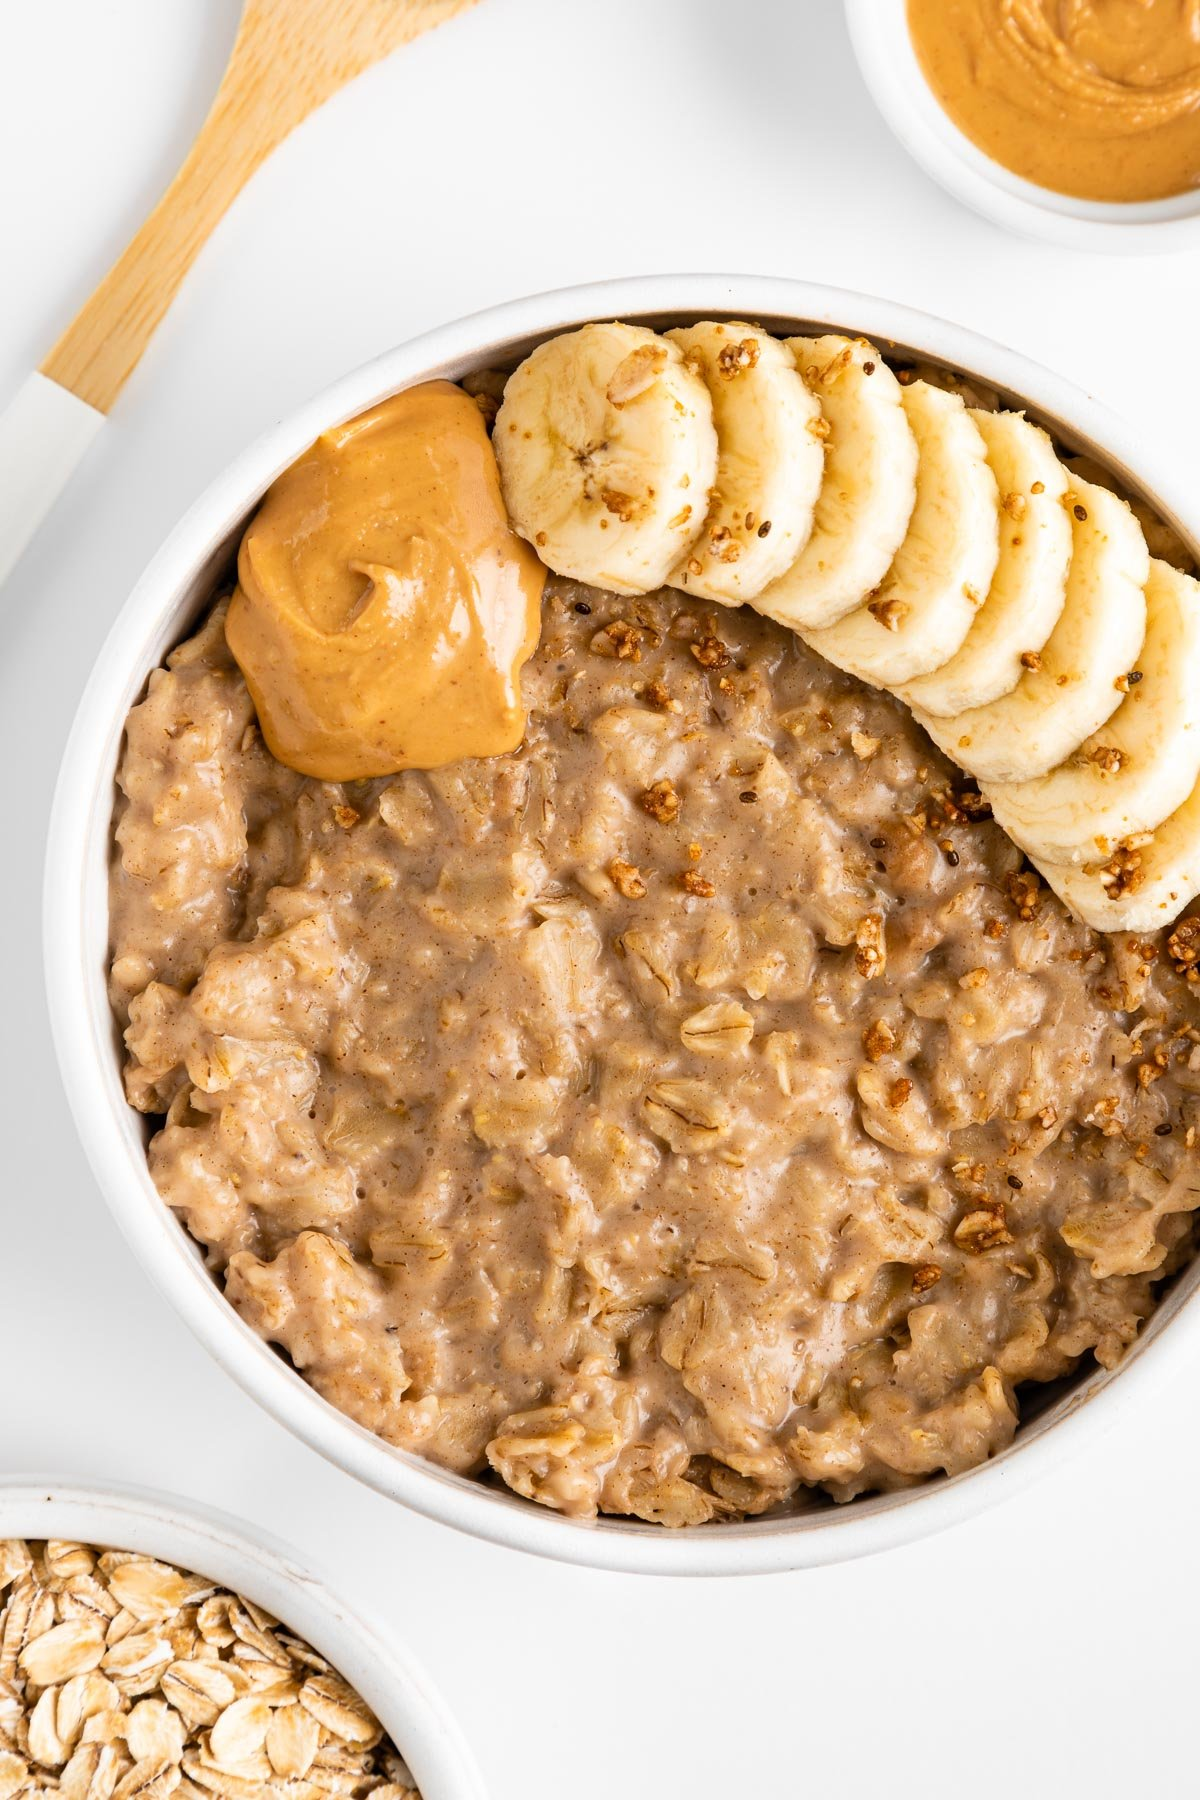 peanut butter oatmeal in a white bowl, topped with sliced banana, granola, and nut butter